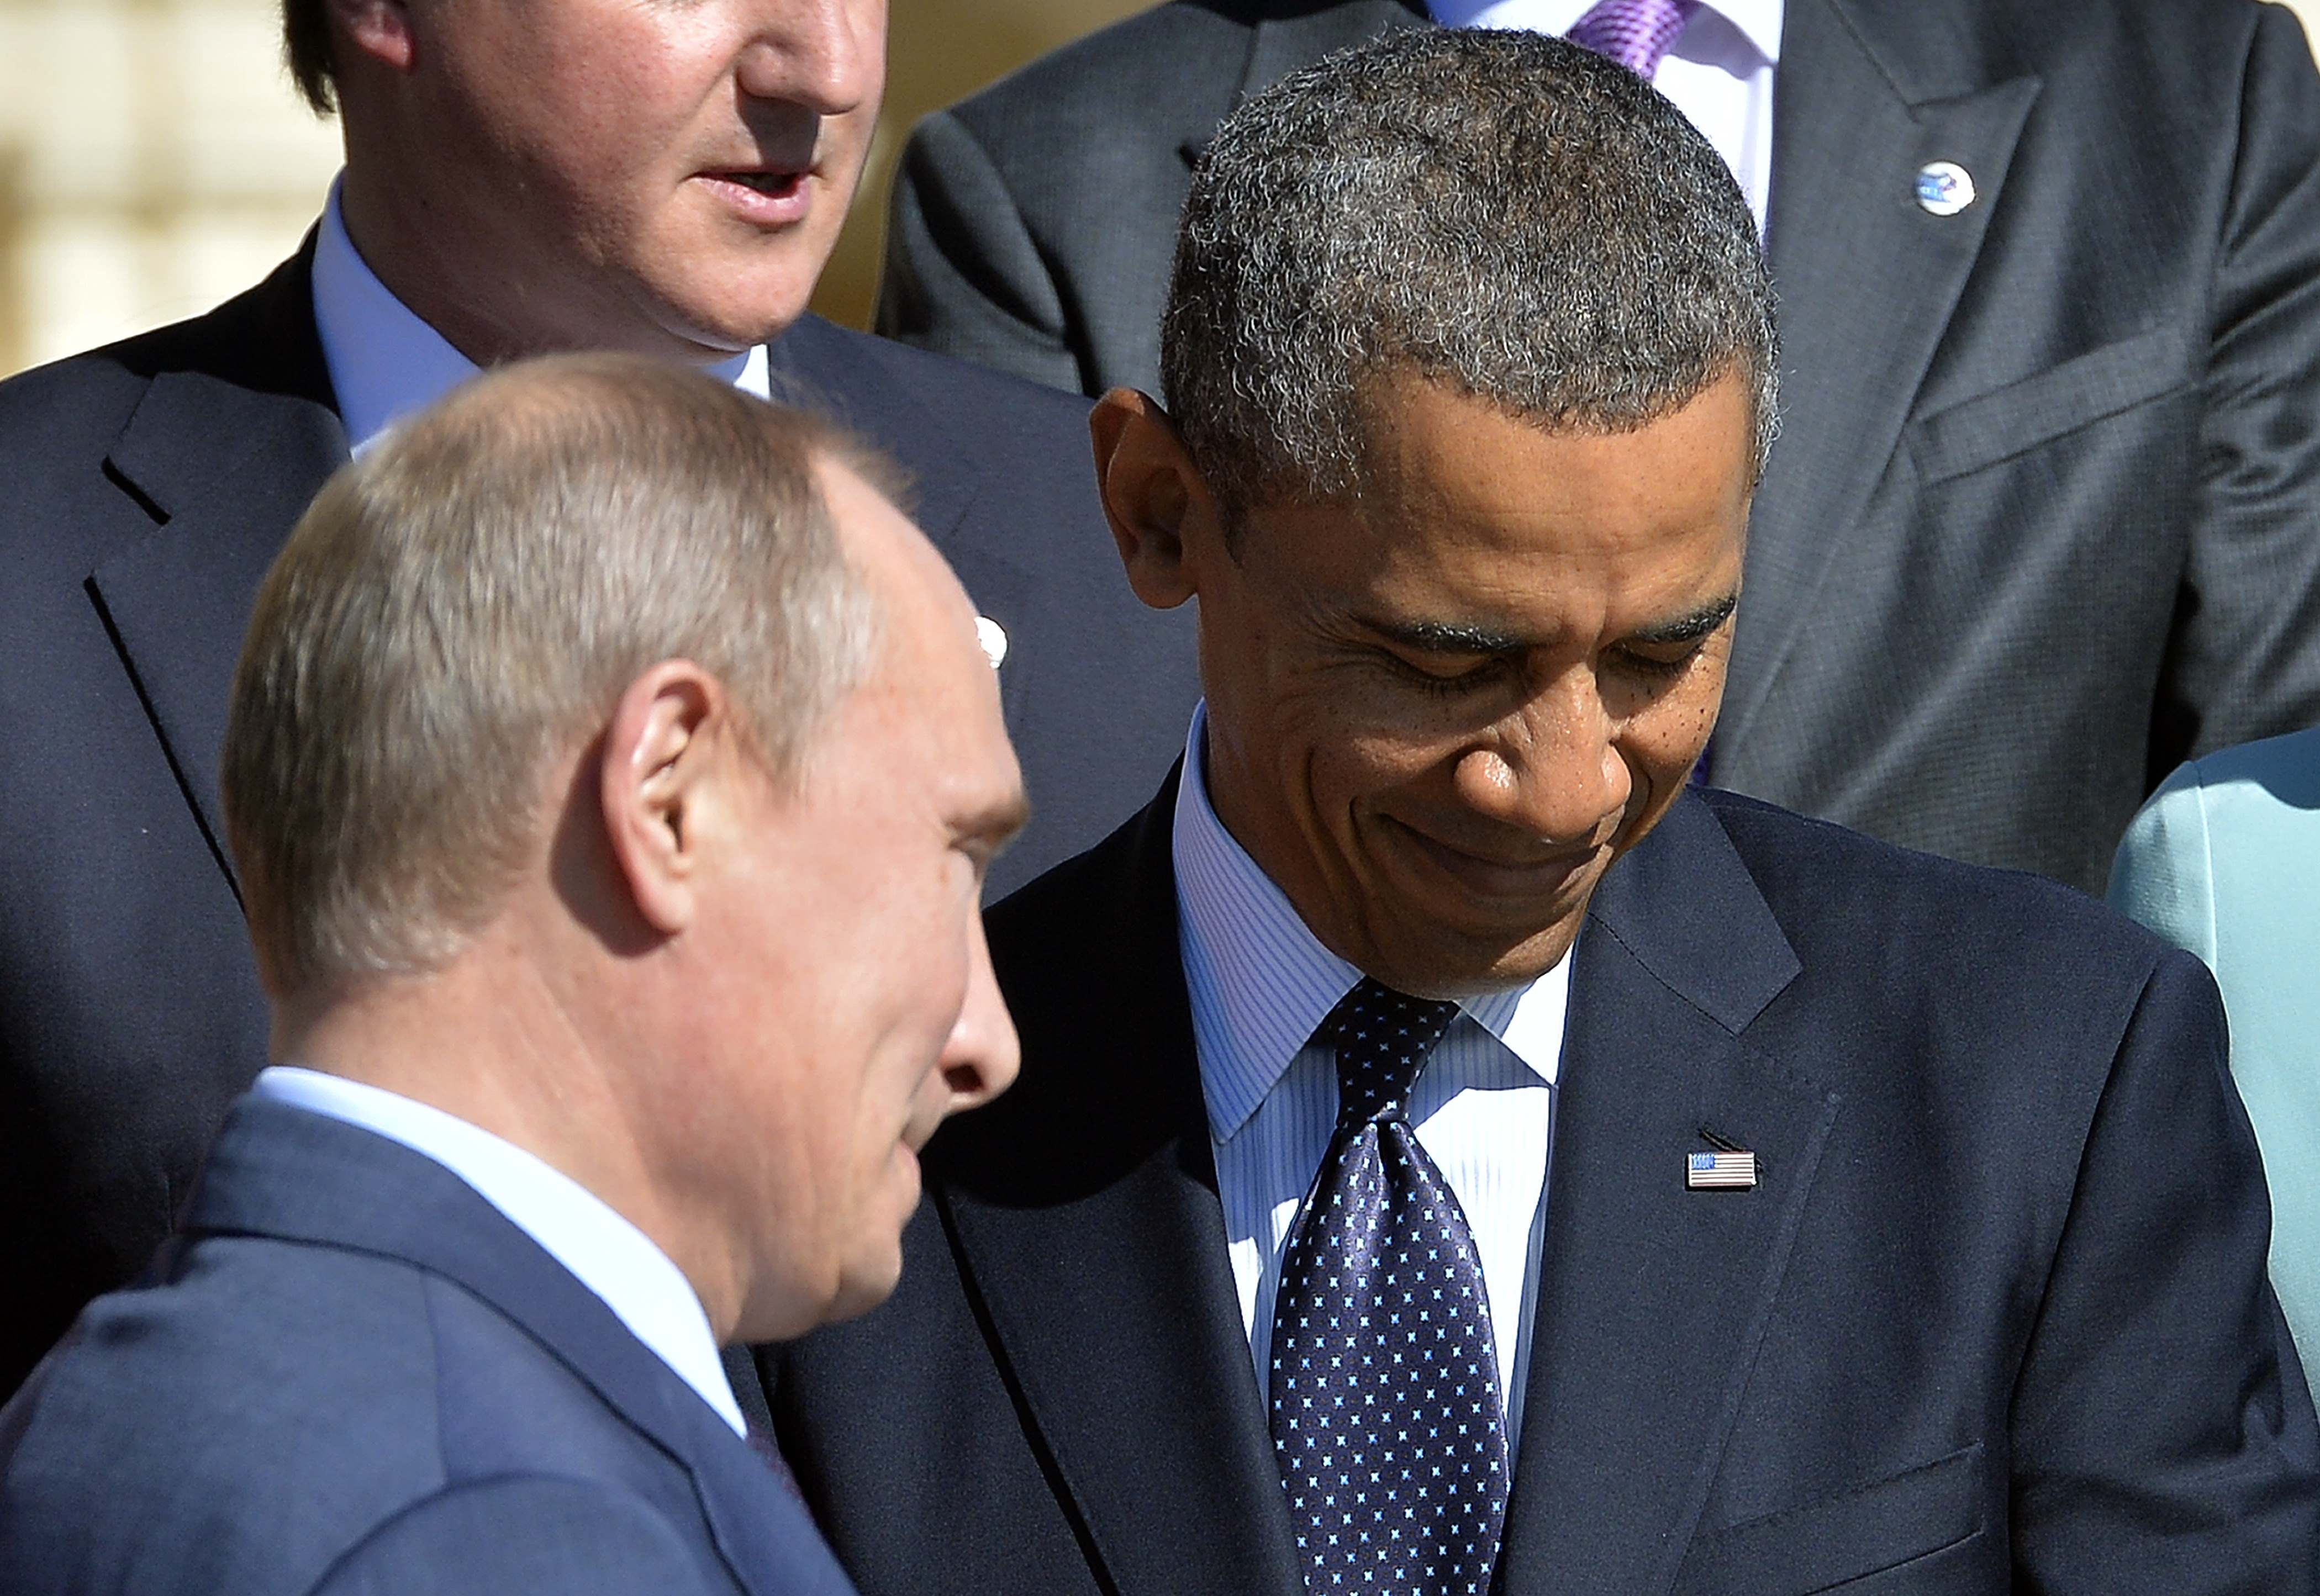 Russias President Vladimir Putin (L) walks past US President Barack Obama as he arrives to pose for the family photo during the G20 summit on September 6, 2013 in Saint Petersburg. World leaders at the G20 summit on Friday failed to bridge their bitter divisions over US plans for military action against the Syrian regime, with Washington signalling that it has given up on securing Russia's support at the UN on the crisis. AFP PHOTO / JEWEL SAMAD (Photo credit should read JEWEL SAMAD/AFP/Getty Images)